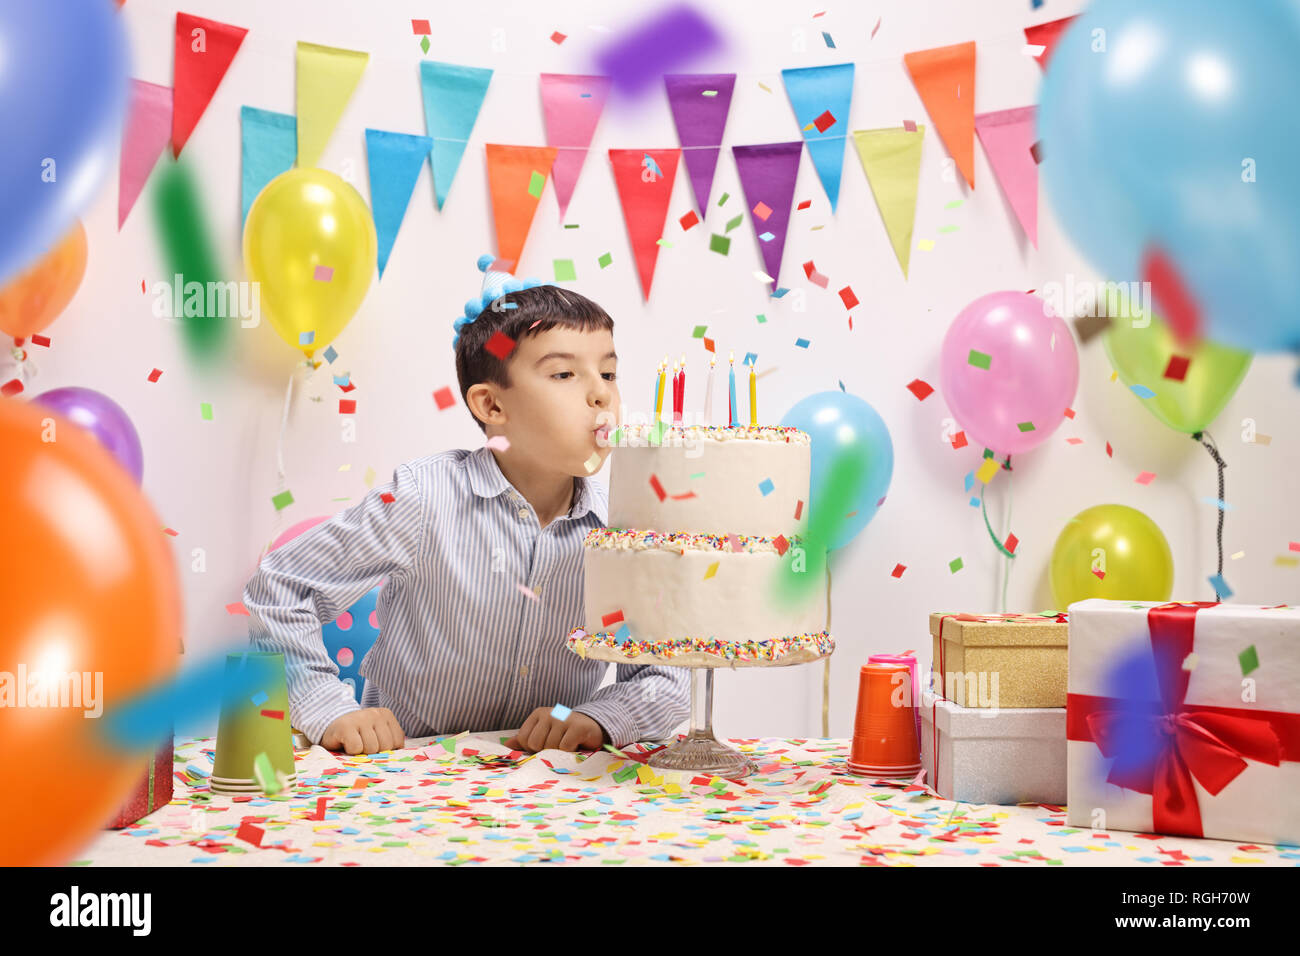 Boy blowing candles from a birthday cake at a party with baloons and presents around him - Stock Image